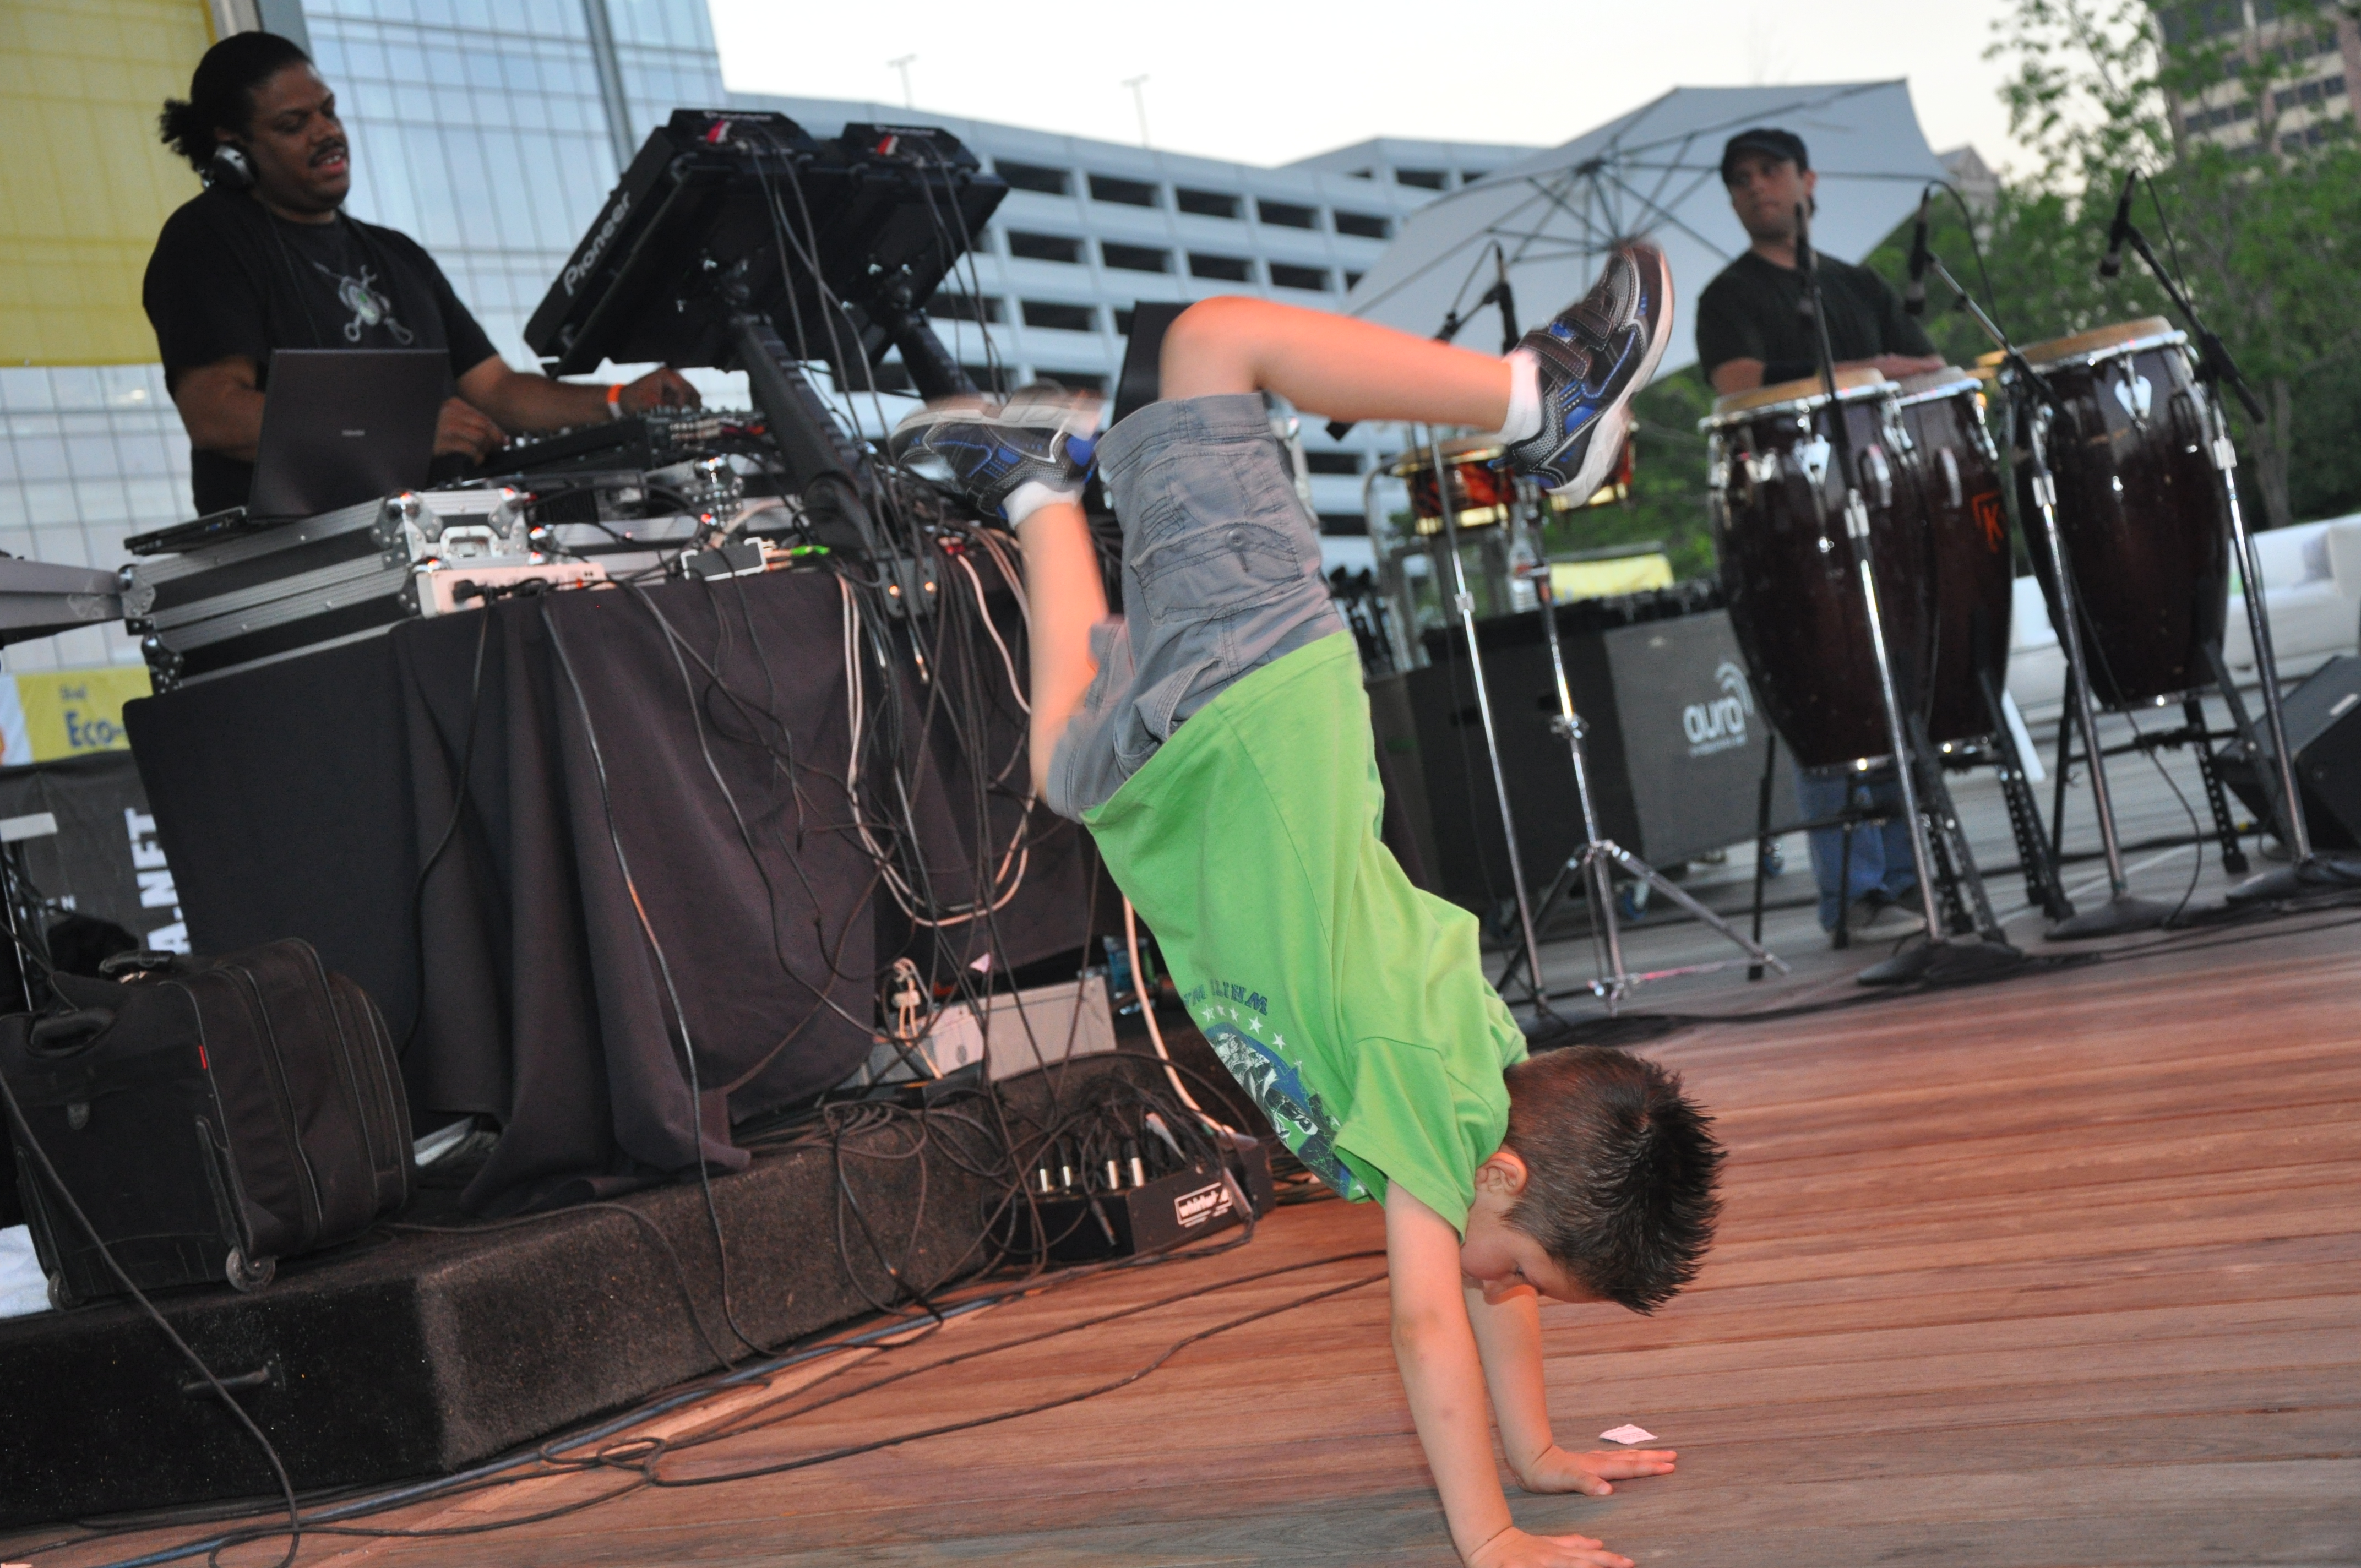 Children Breakdancing